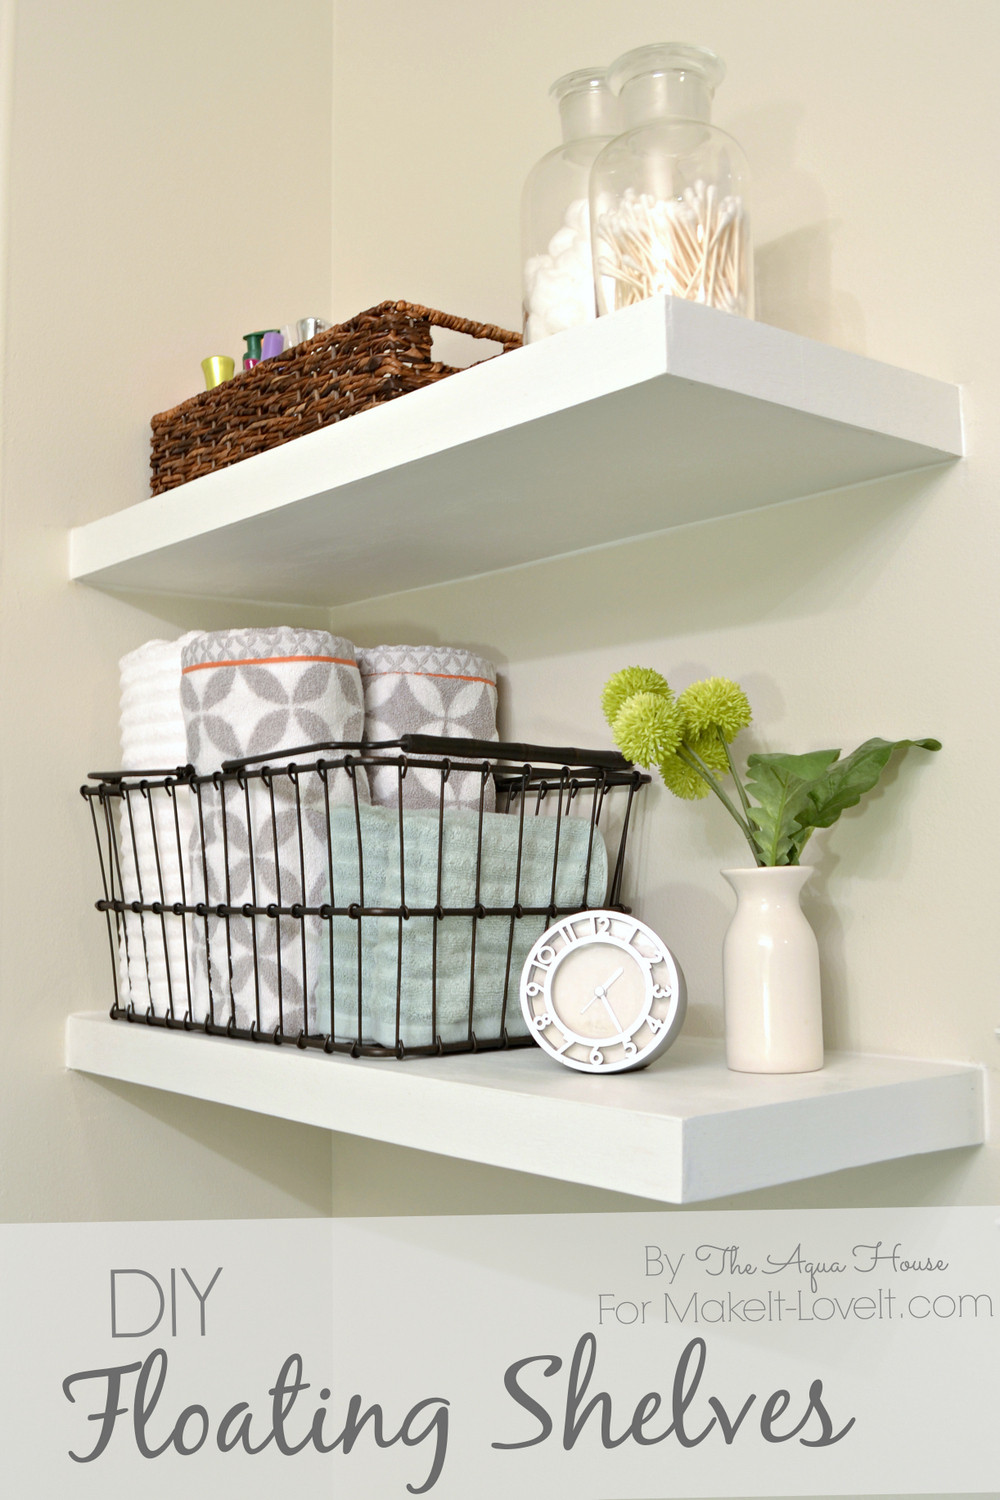 Best ideas about DIY Floating Wall Shelves . Save or Pin DIY Floating Shelves a great storage solution Now.